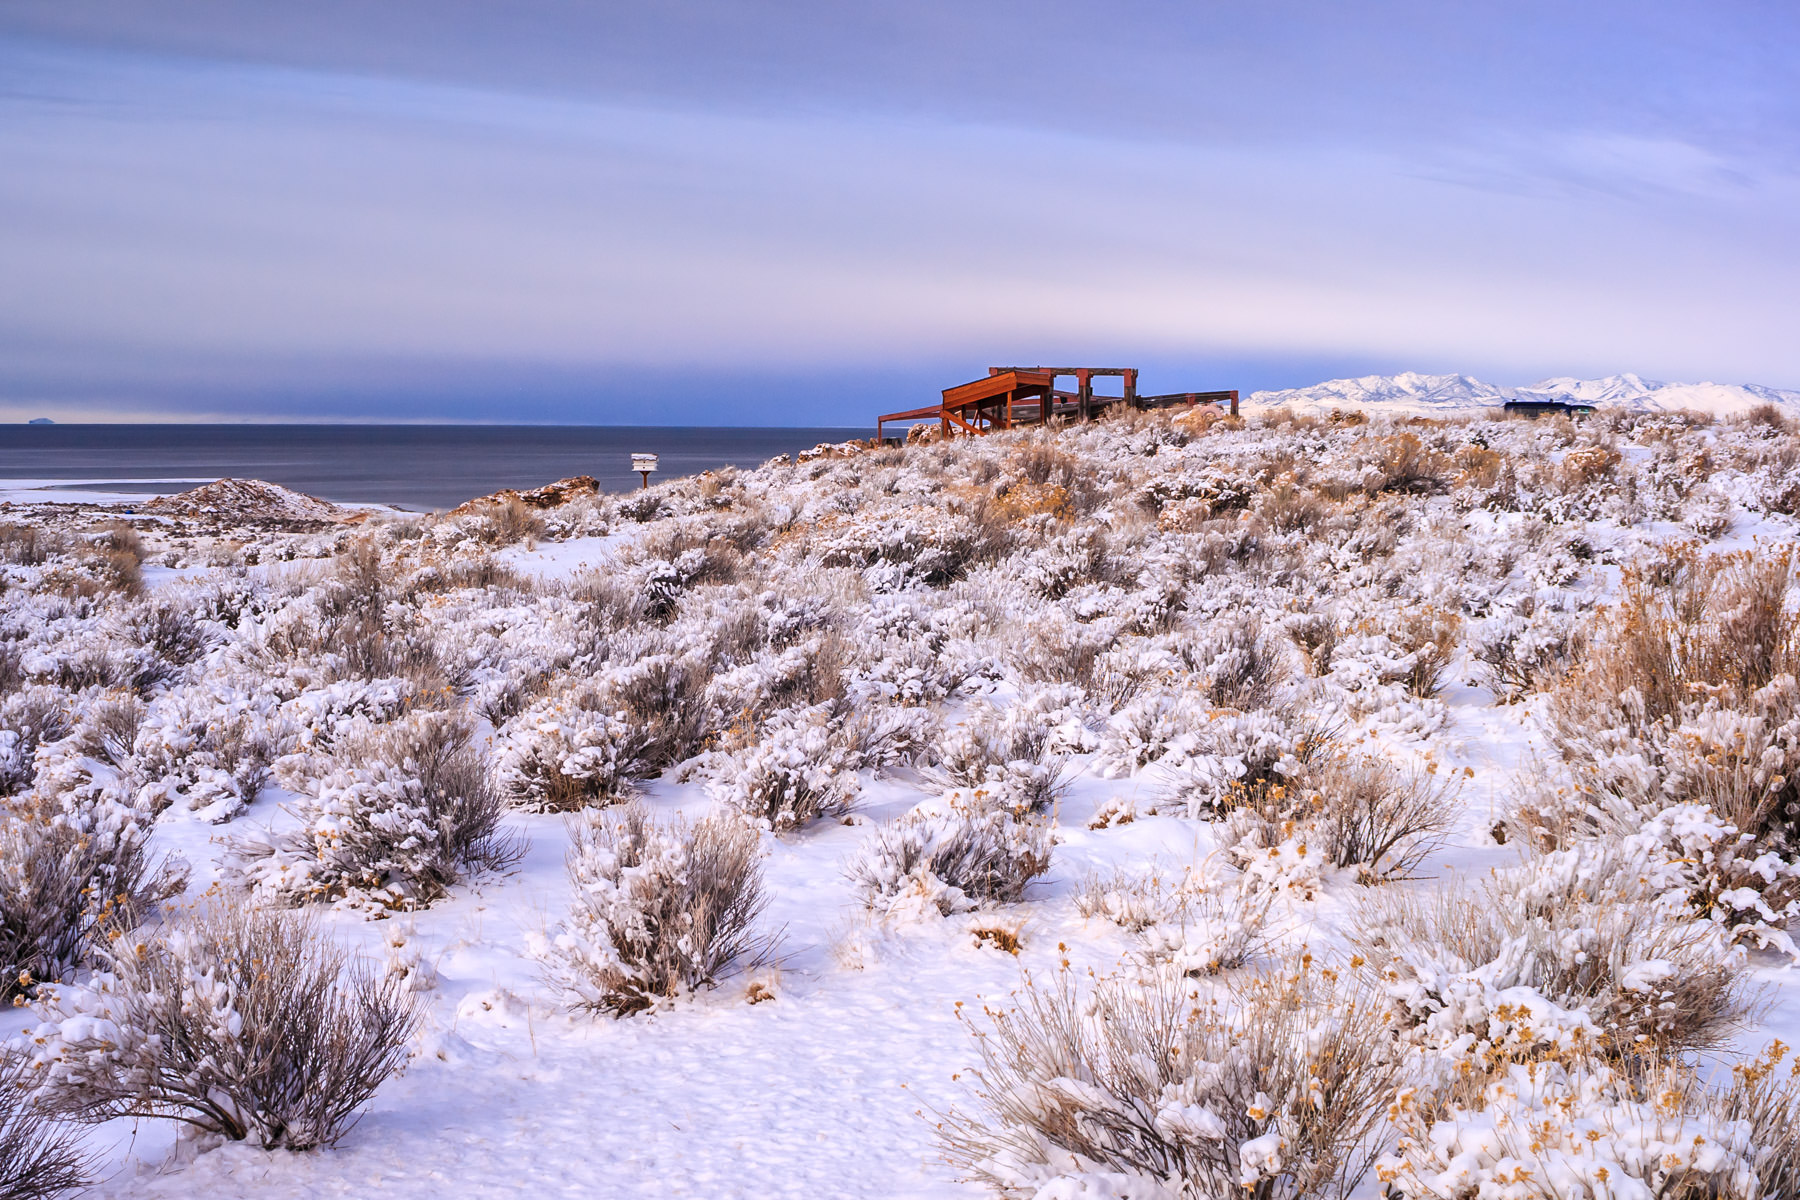 The visitors center in winter at Antelope Island State Park, Utah.